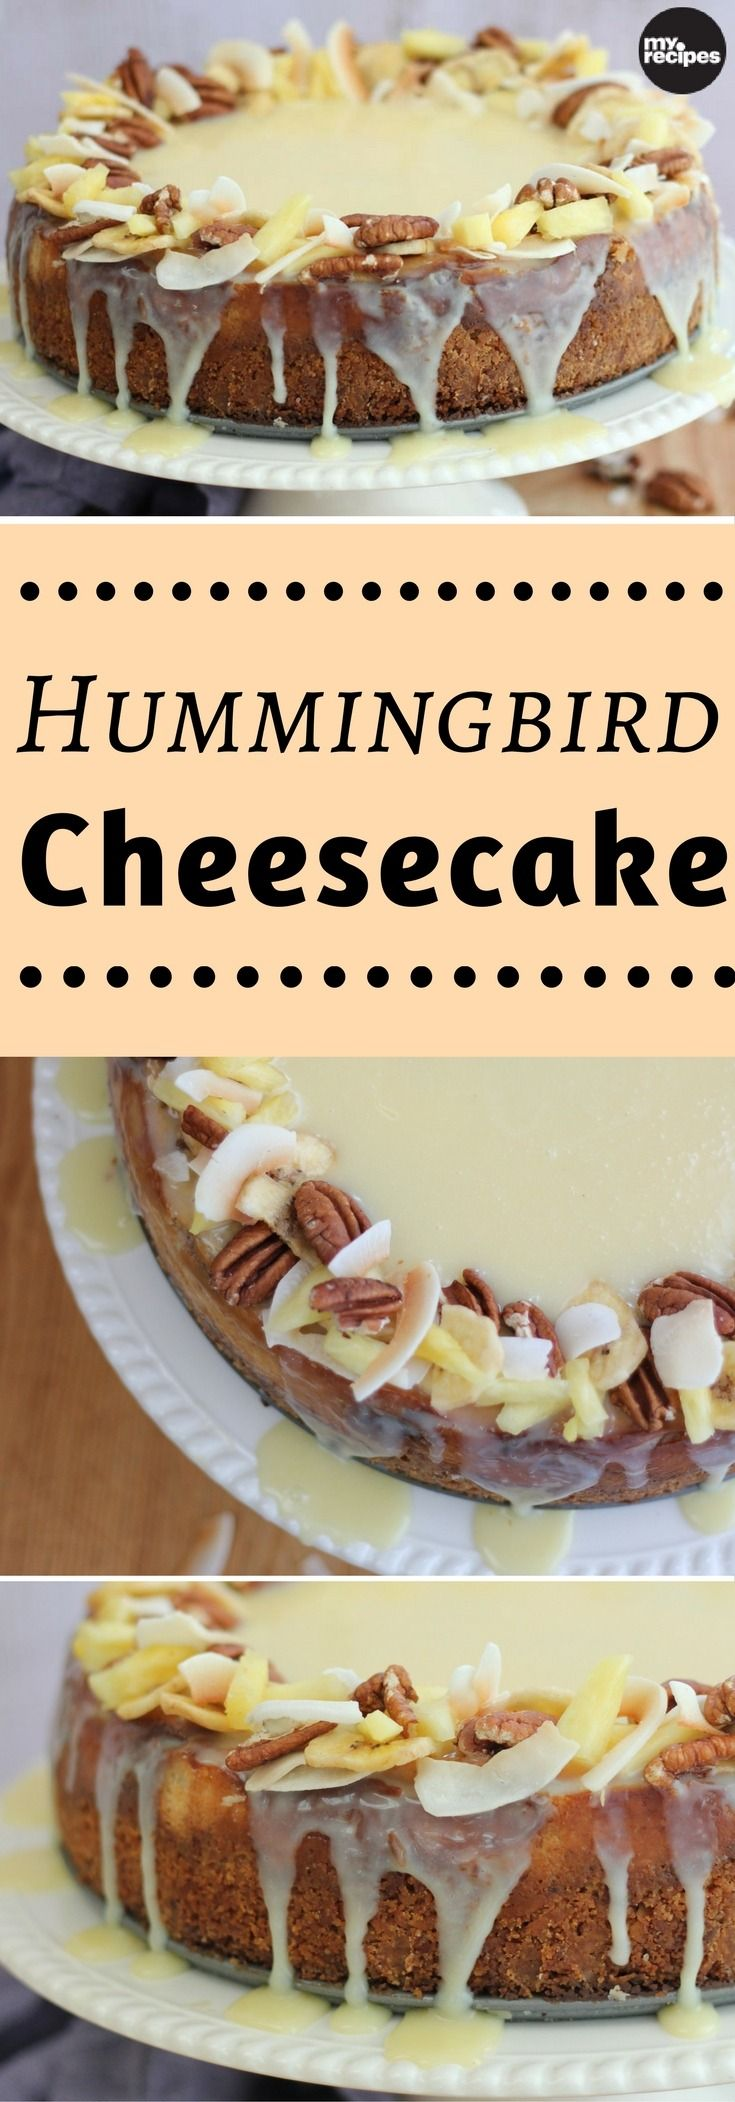 All of the elements of a classic hummingbird cake come together here in decadent cheesecake form. Layers of banana cheesecake, pineapple-pecan praline sauce, vanilla cheesecake, and white chocolate ganache are all stacked into a pecan-coconut graham cracker crust for a show-stopping dessert you won't soon forget. Despite the intimidation factor that often surrounds making cheesecakes at home, we highly encourage you to give this one a go.   MyRecipes